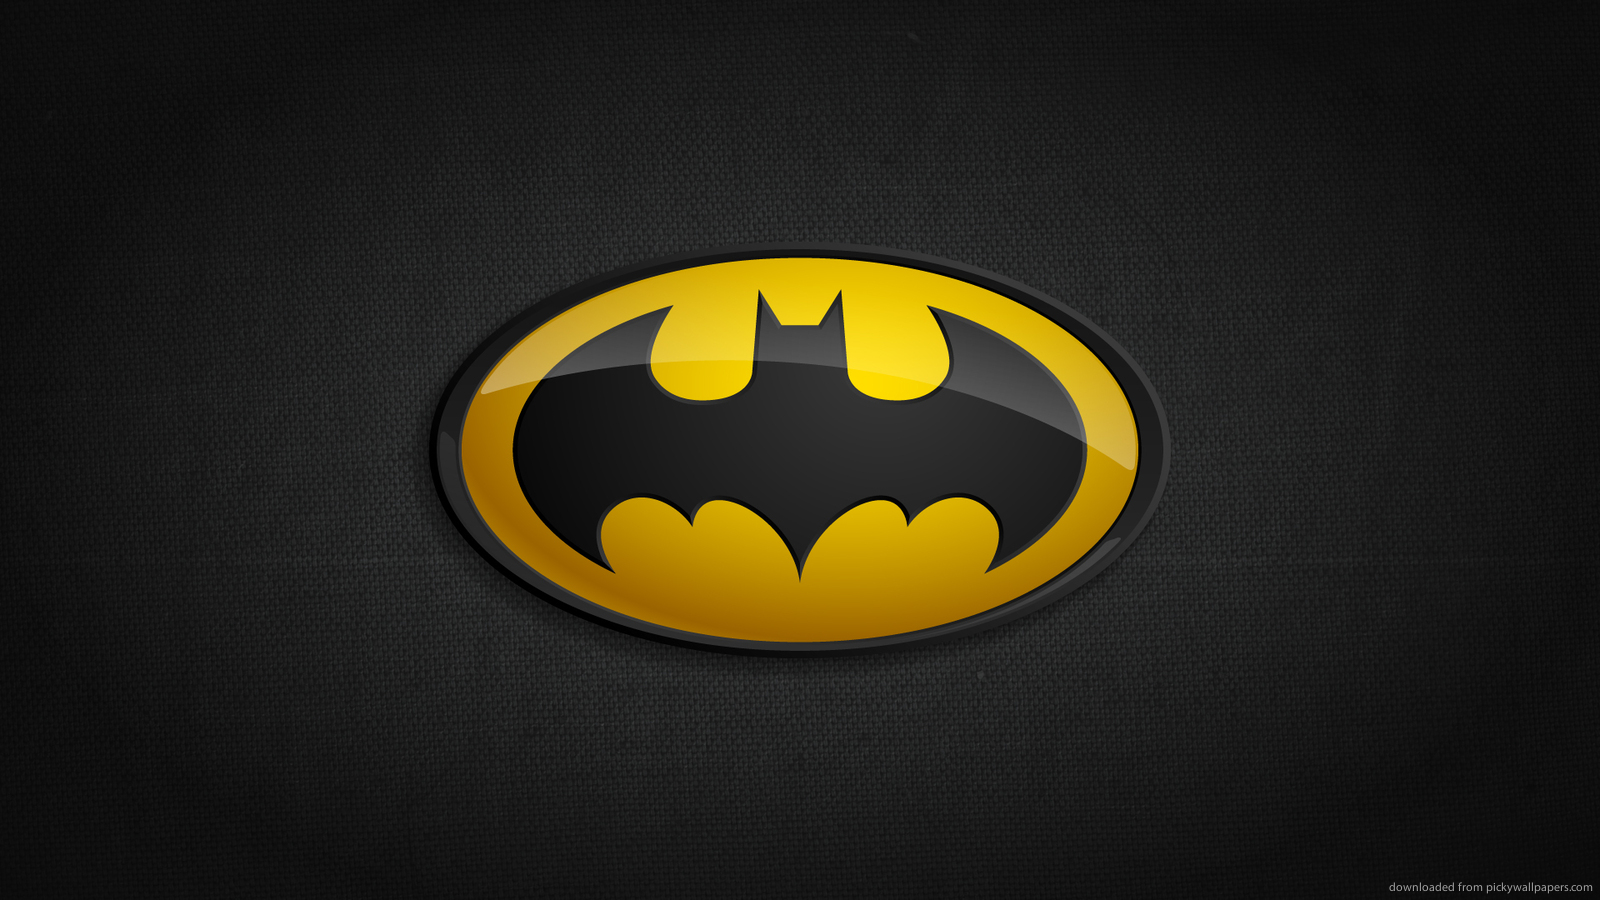 Superheroes Logos Wallpaper Batman classic logo for 1600x900